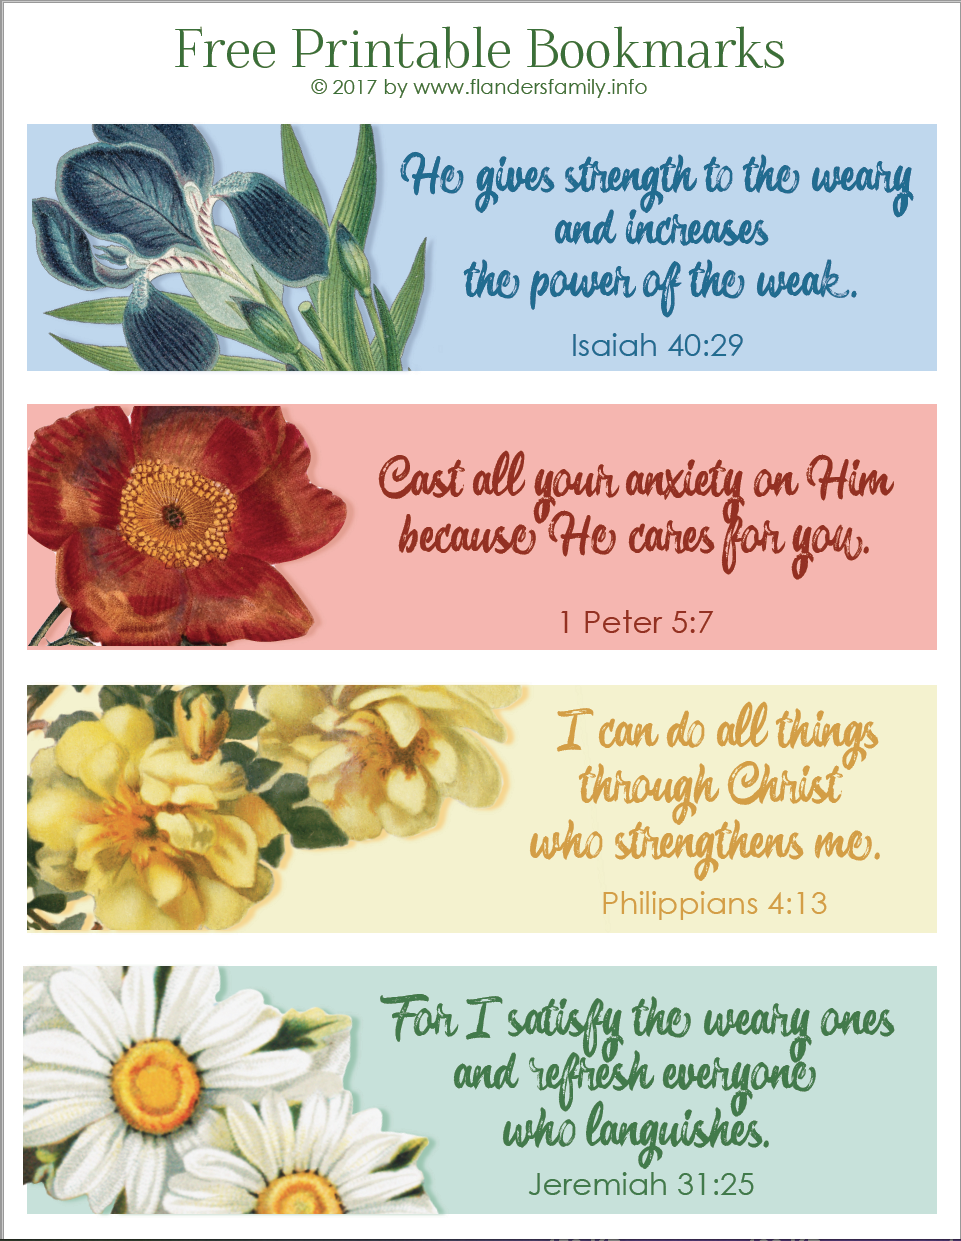 graphic about Free Printable Bible Verses titled Beautiful Printable Scripture Bookmarks - Flanders Spouse and children Homelife